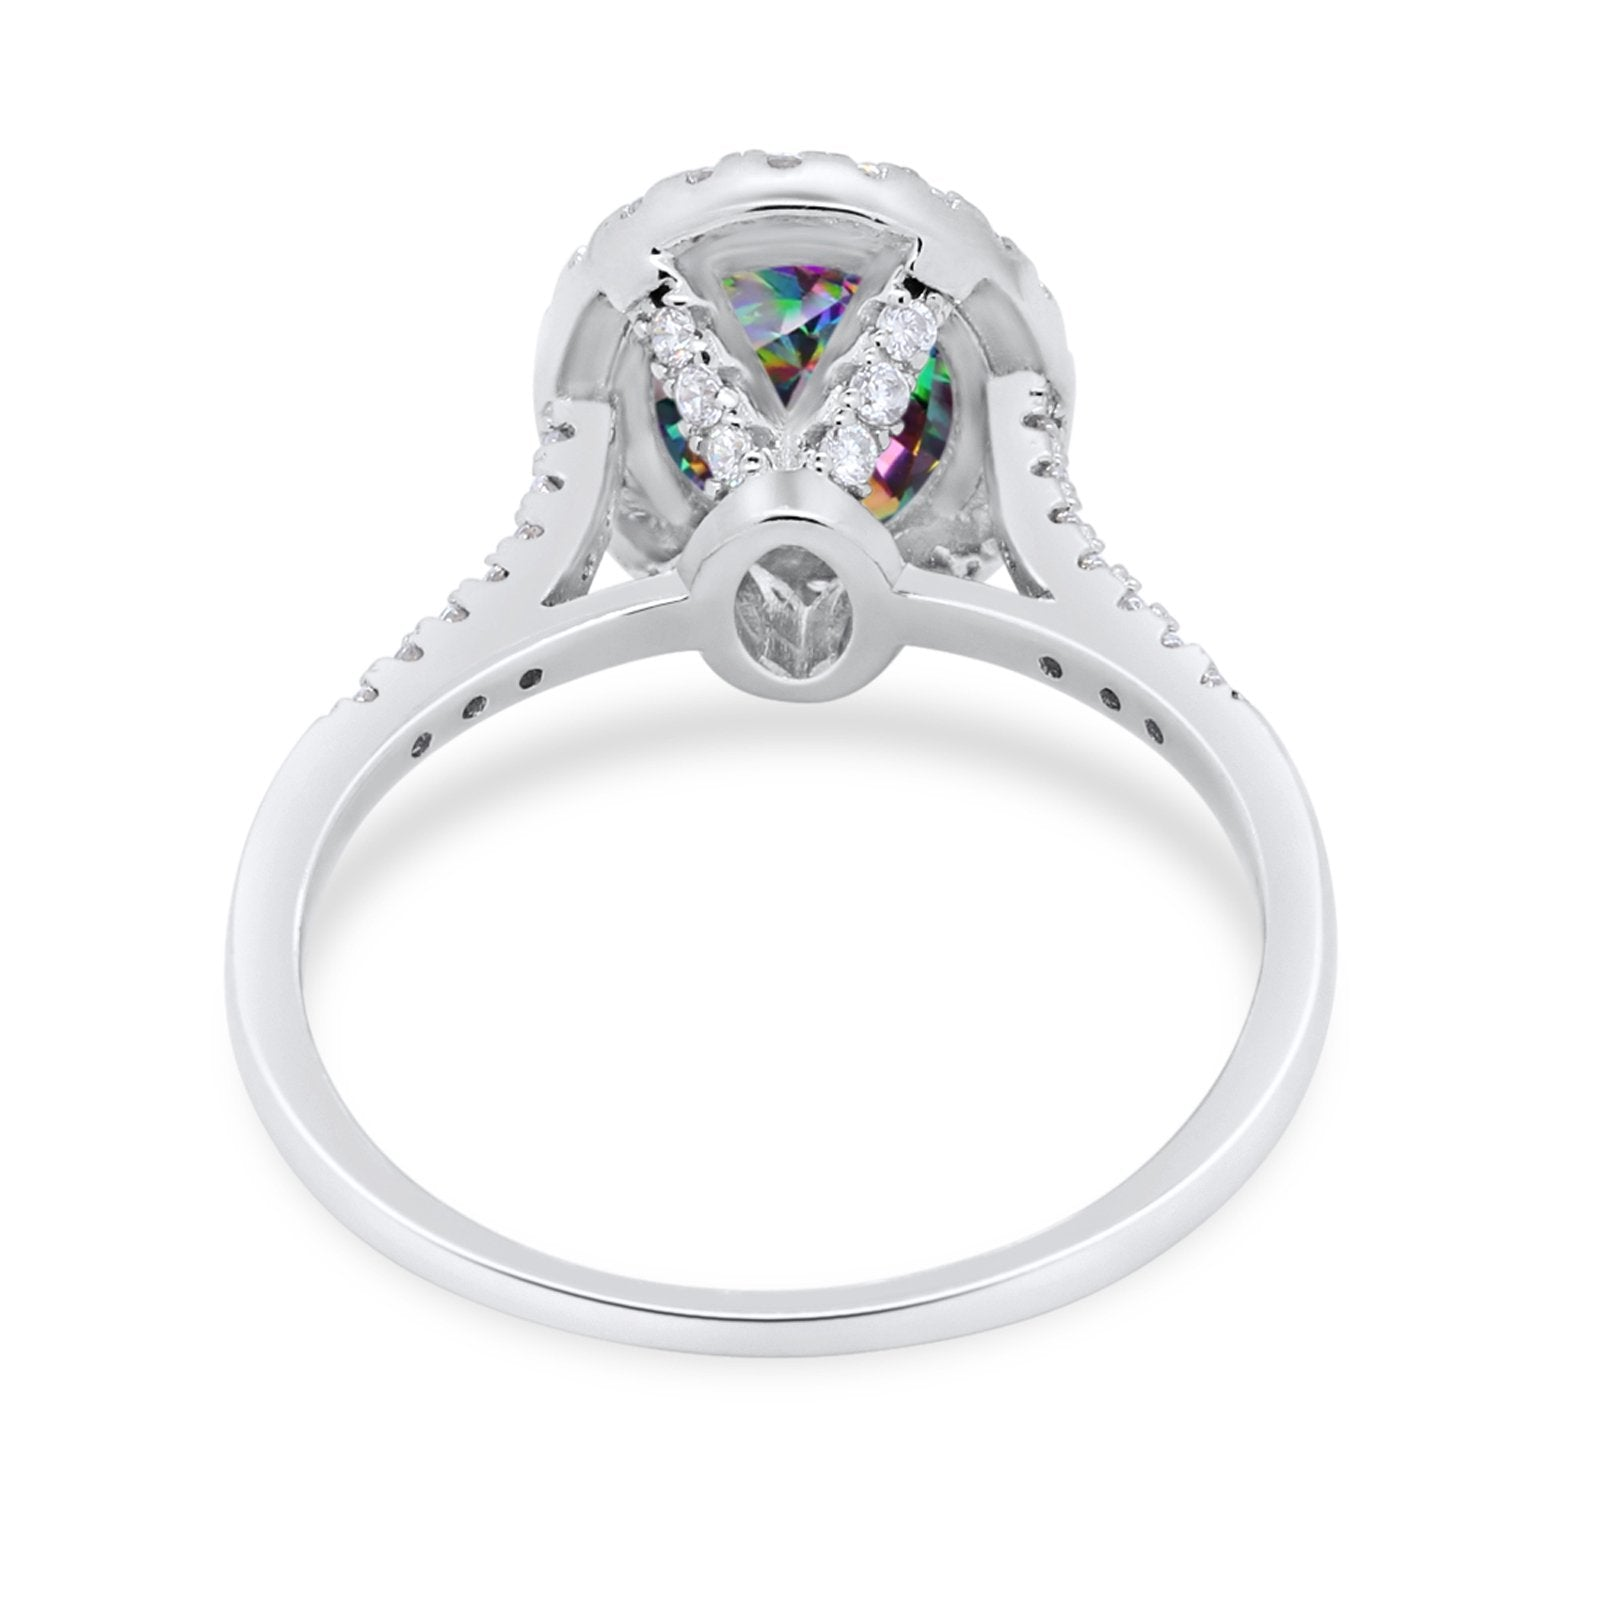 Halo Art Deco Oval Wedding Engagement Bridal Ring Round Cubic Zirconia 925 Sterling Silver